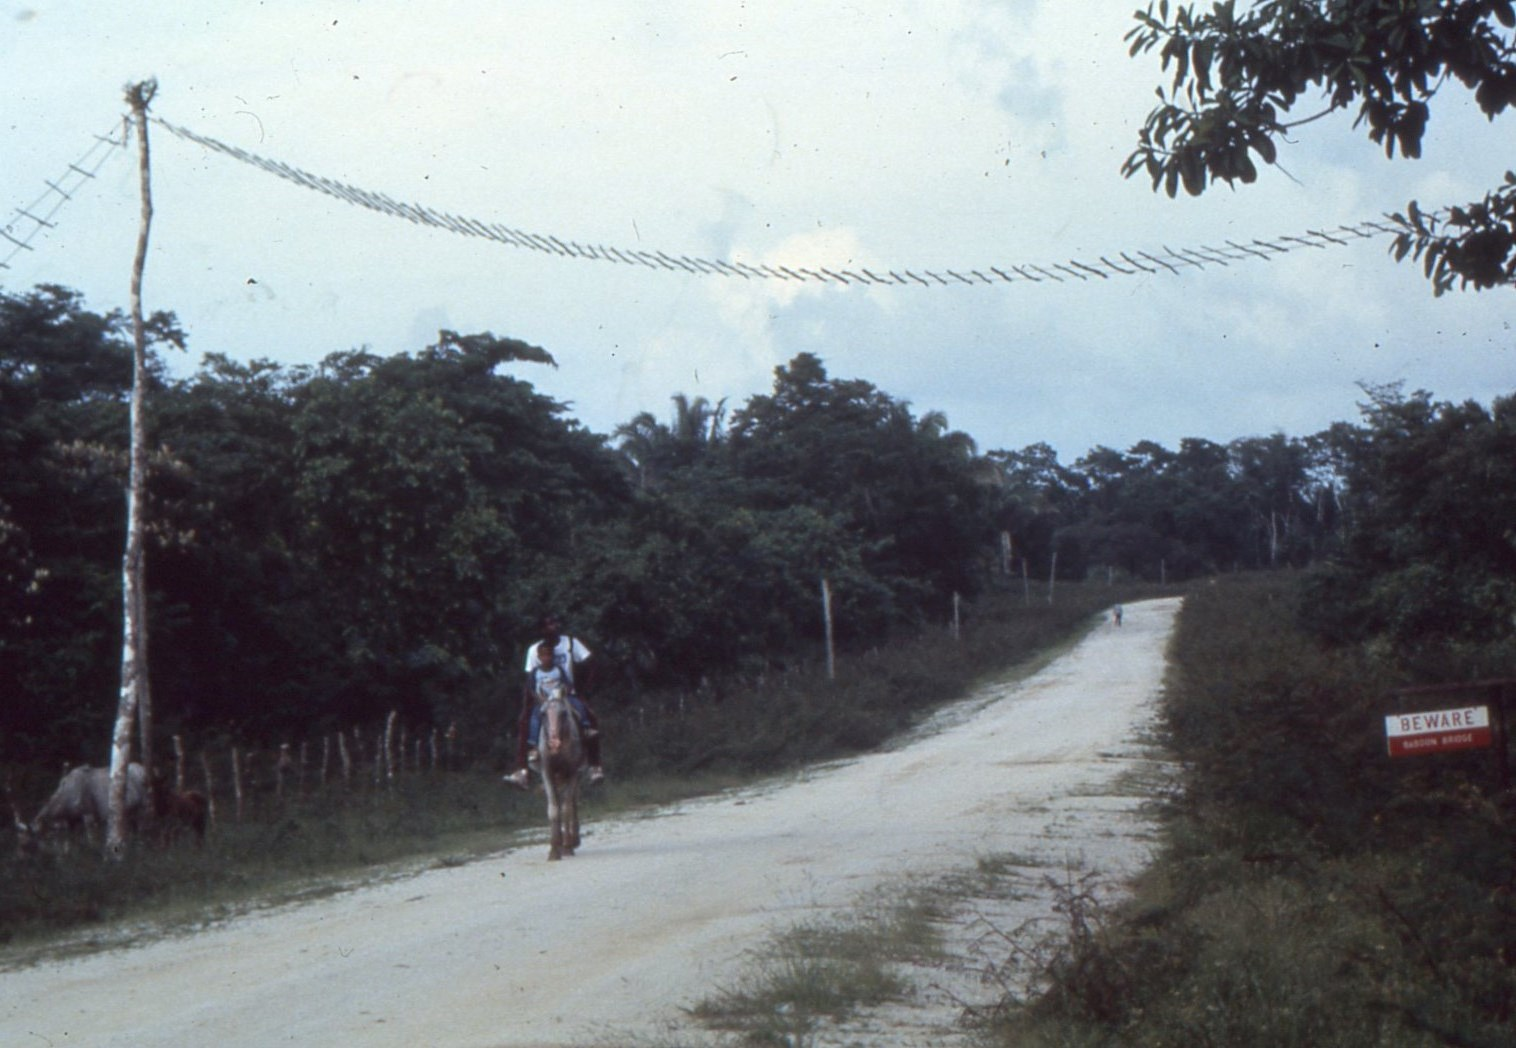 http://memoriam.communityconservation.org/Baboon Bridge at Bermudian Landing 1988.jpg